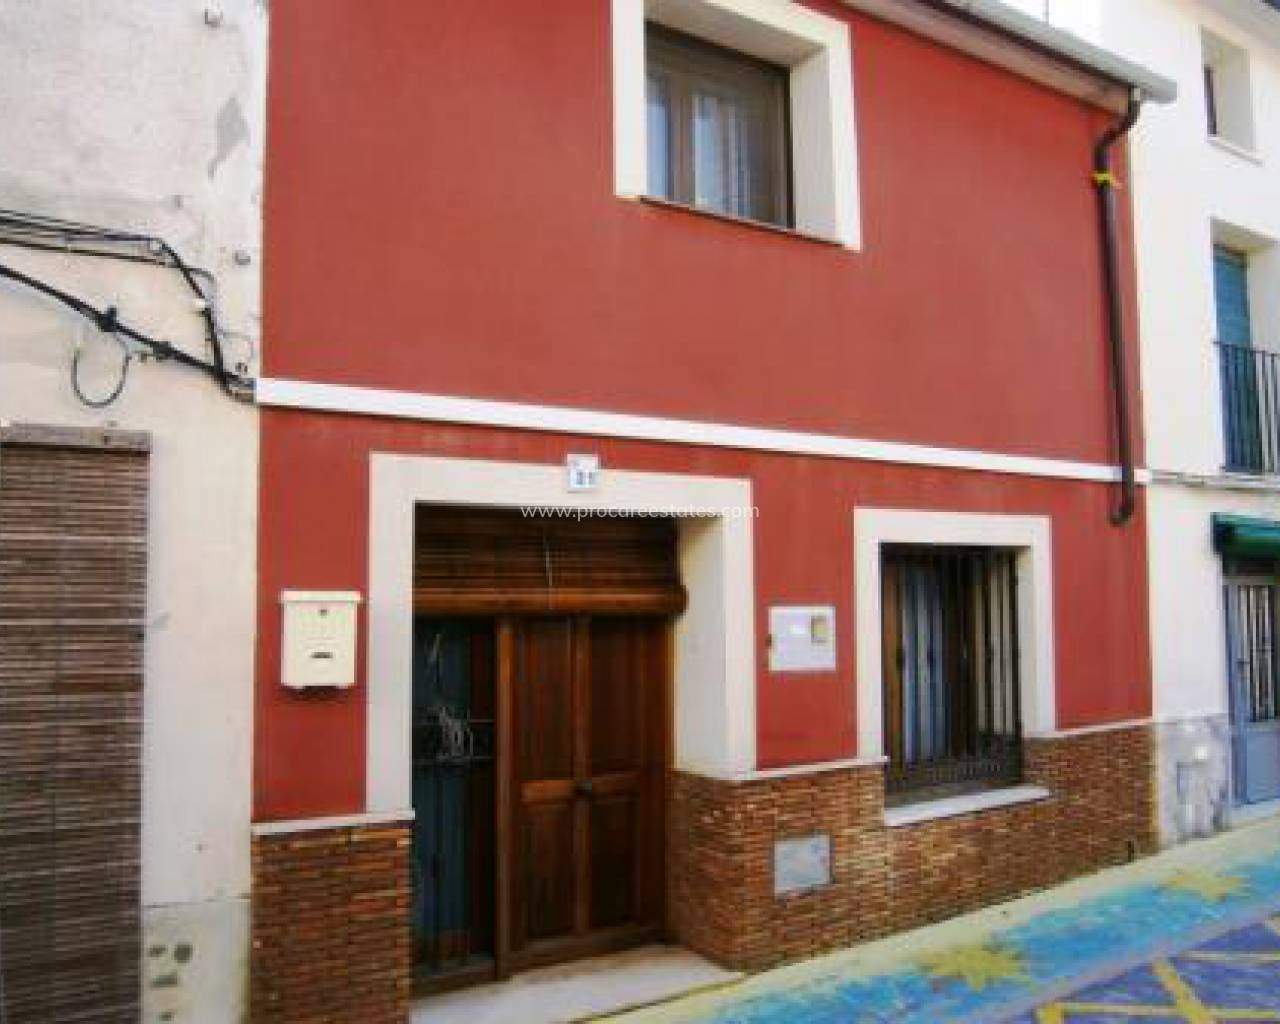 Townhouse - Resale - Gaianes - Gaianes